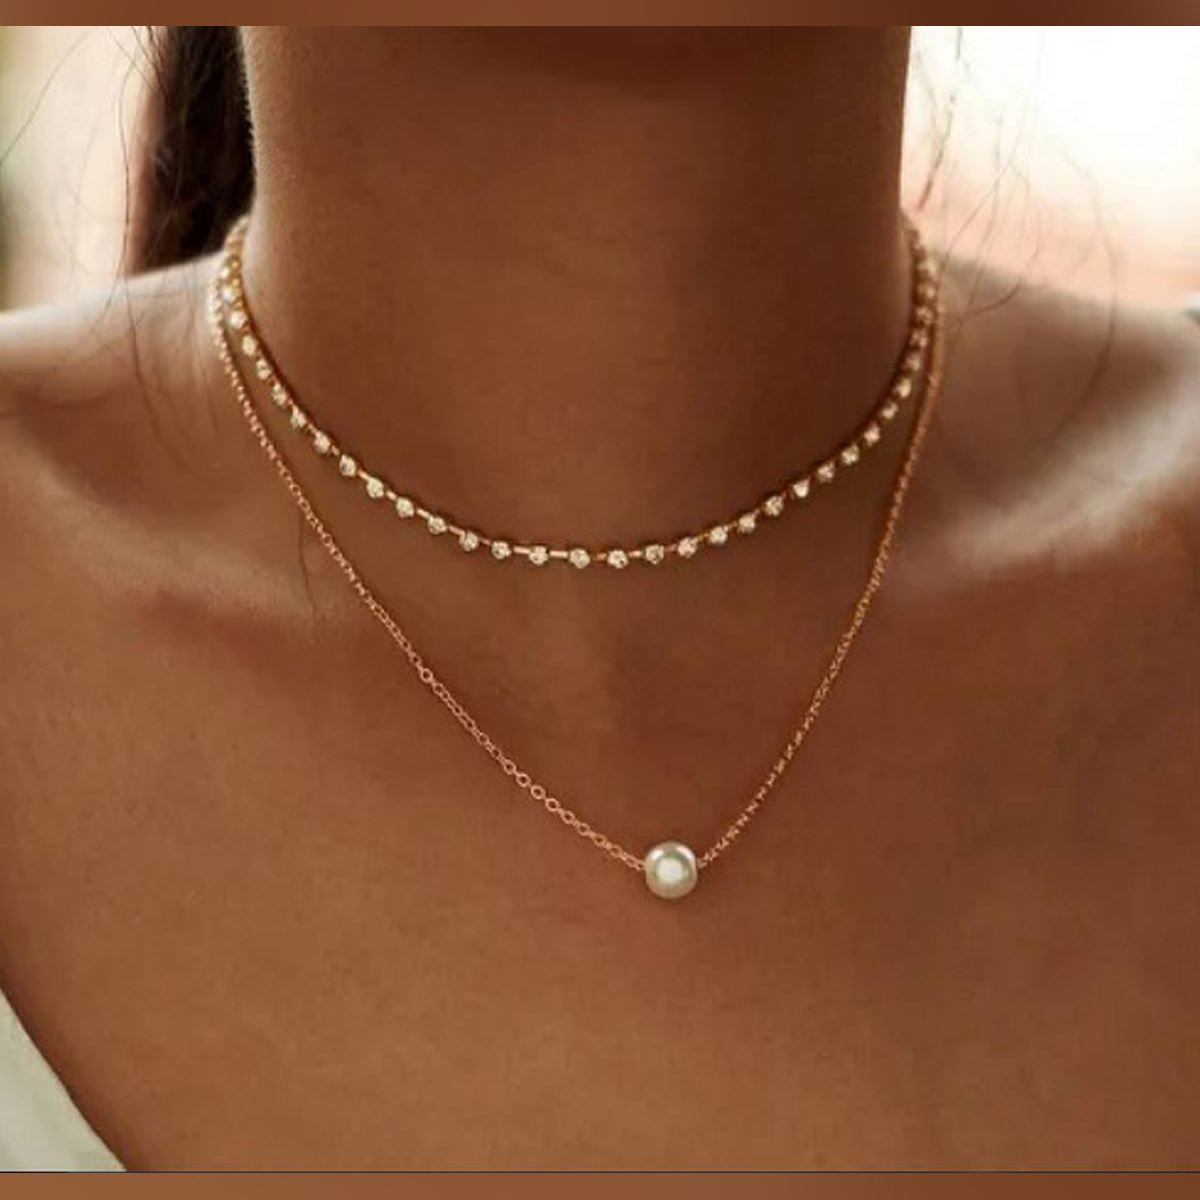 Trendy Multi-layer Pearl Pendant Charm Choker Chain Necklace For Girls & Womens